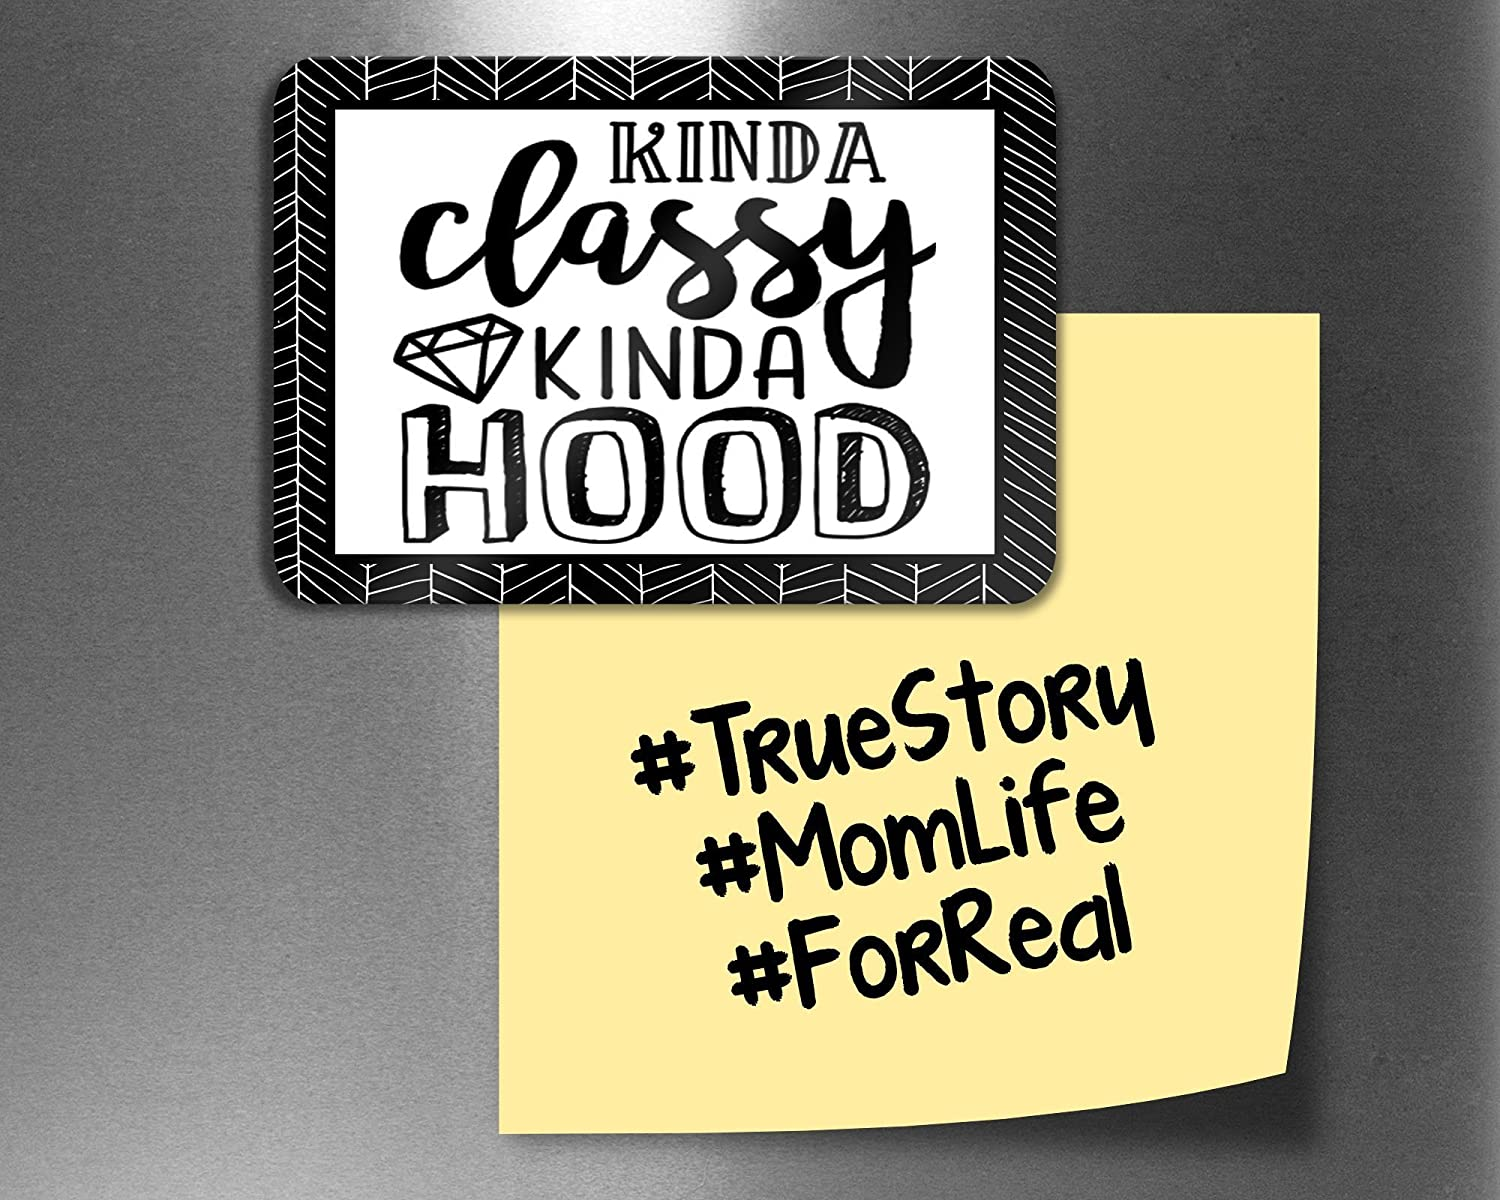 Kinda Classy Kinda Hood Funny Fridge Magnets, Refrigerator Magnets with  Quotes, Funny Kitchen Decor Noticeboard Office Supplies, Best Housewarming  ...